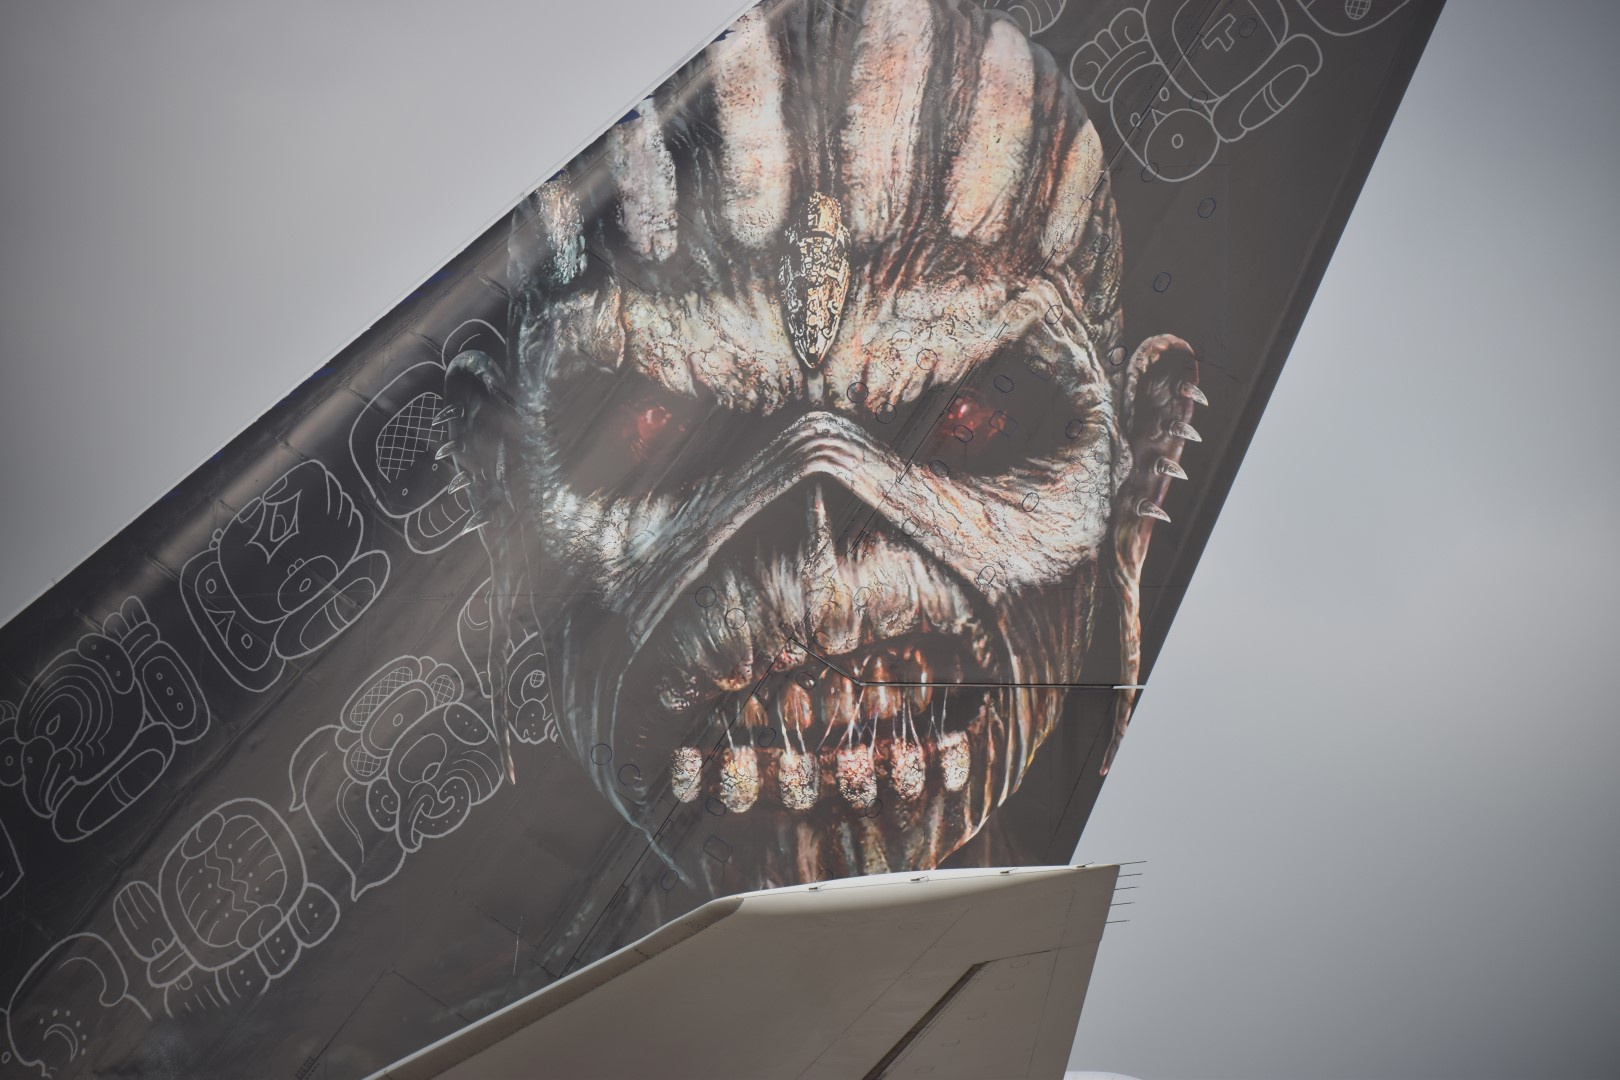 Iron Maiden - Ed Force One - Schiphol, Amsterdam (03)